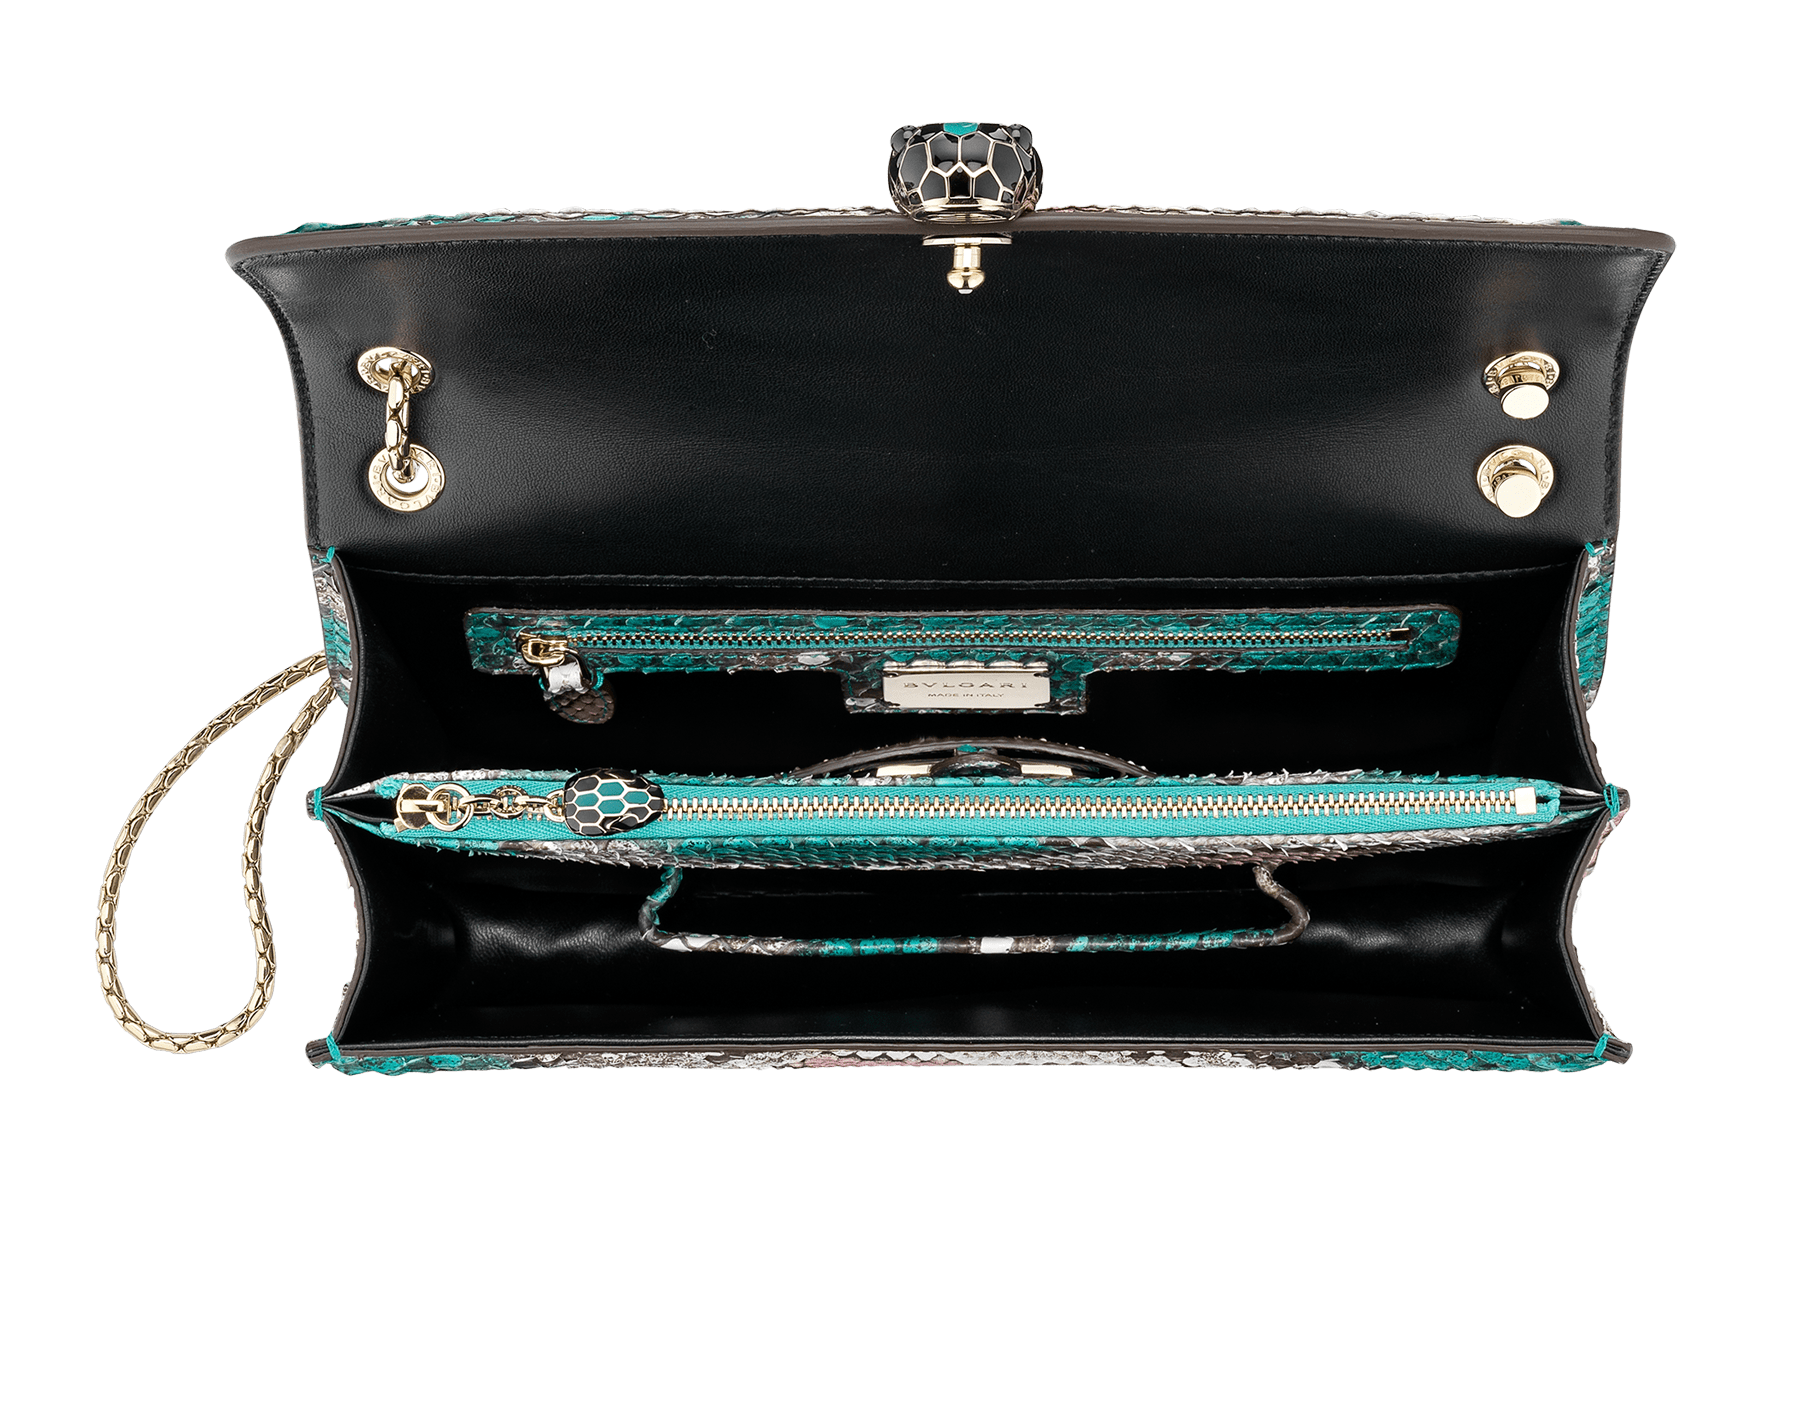 Serpenti Forever shoulder bag in arctic jade Psiche python skin. Iconic snakehead closure in light gold plated brass embellished with black and arctic jade enamel and black onyx eyes. 288939 image 4